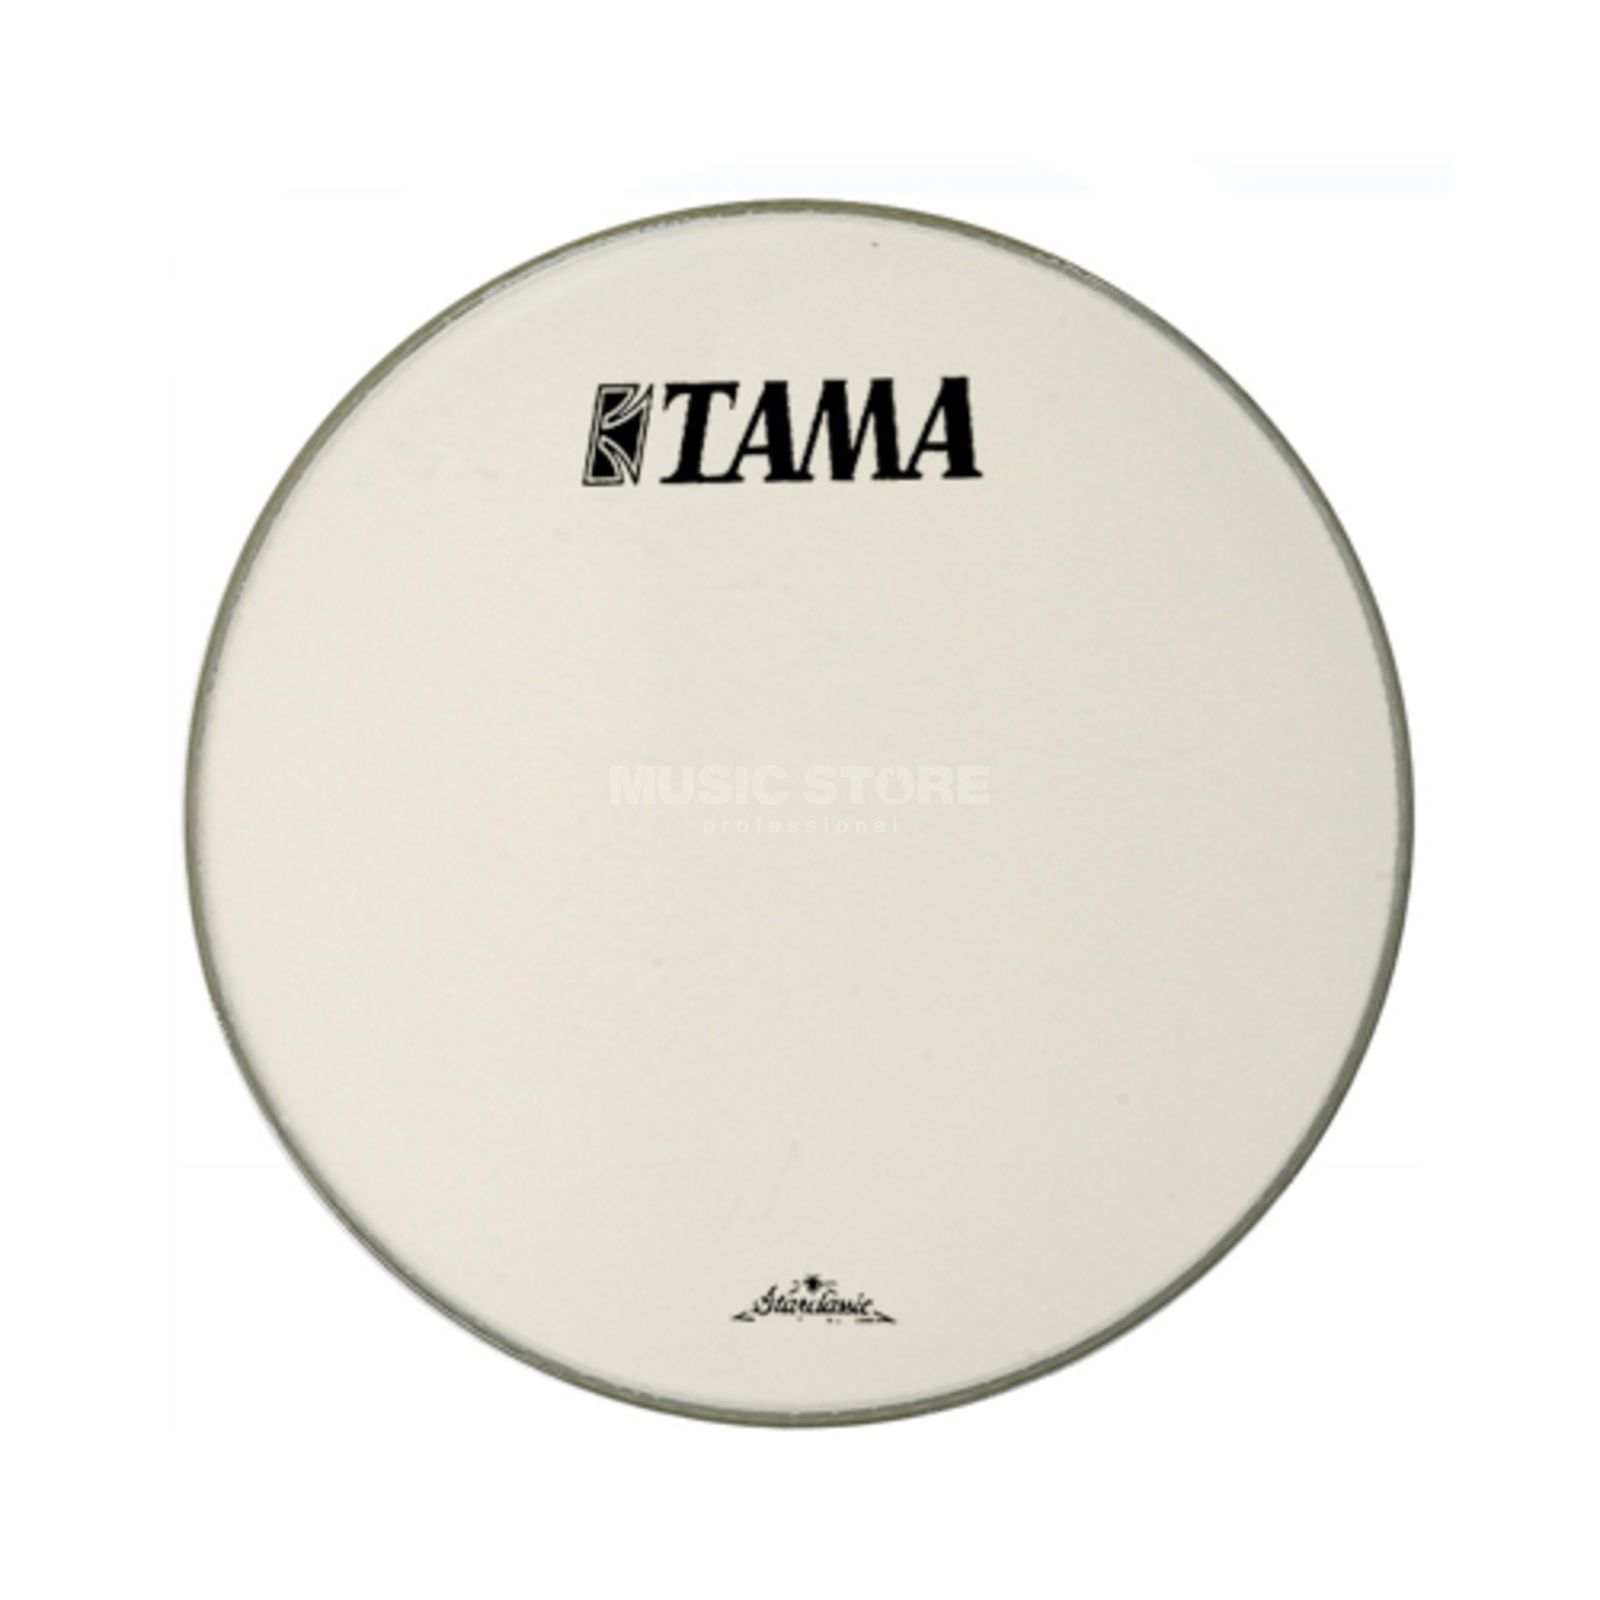 "Tama Bass Drum Front Head CT18BMOT, 18"", white, Starclassic logo Product Image"